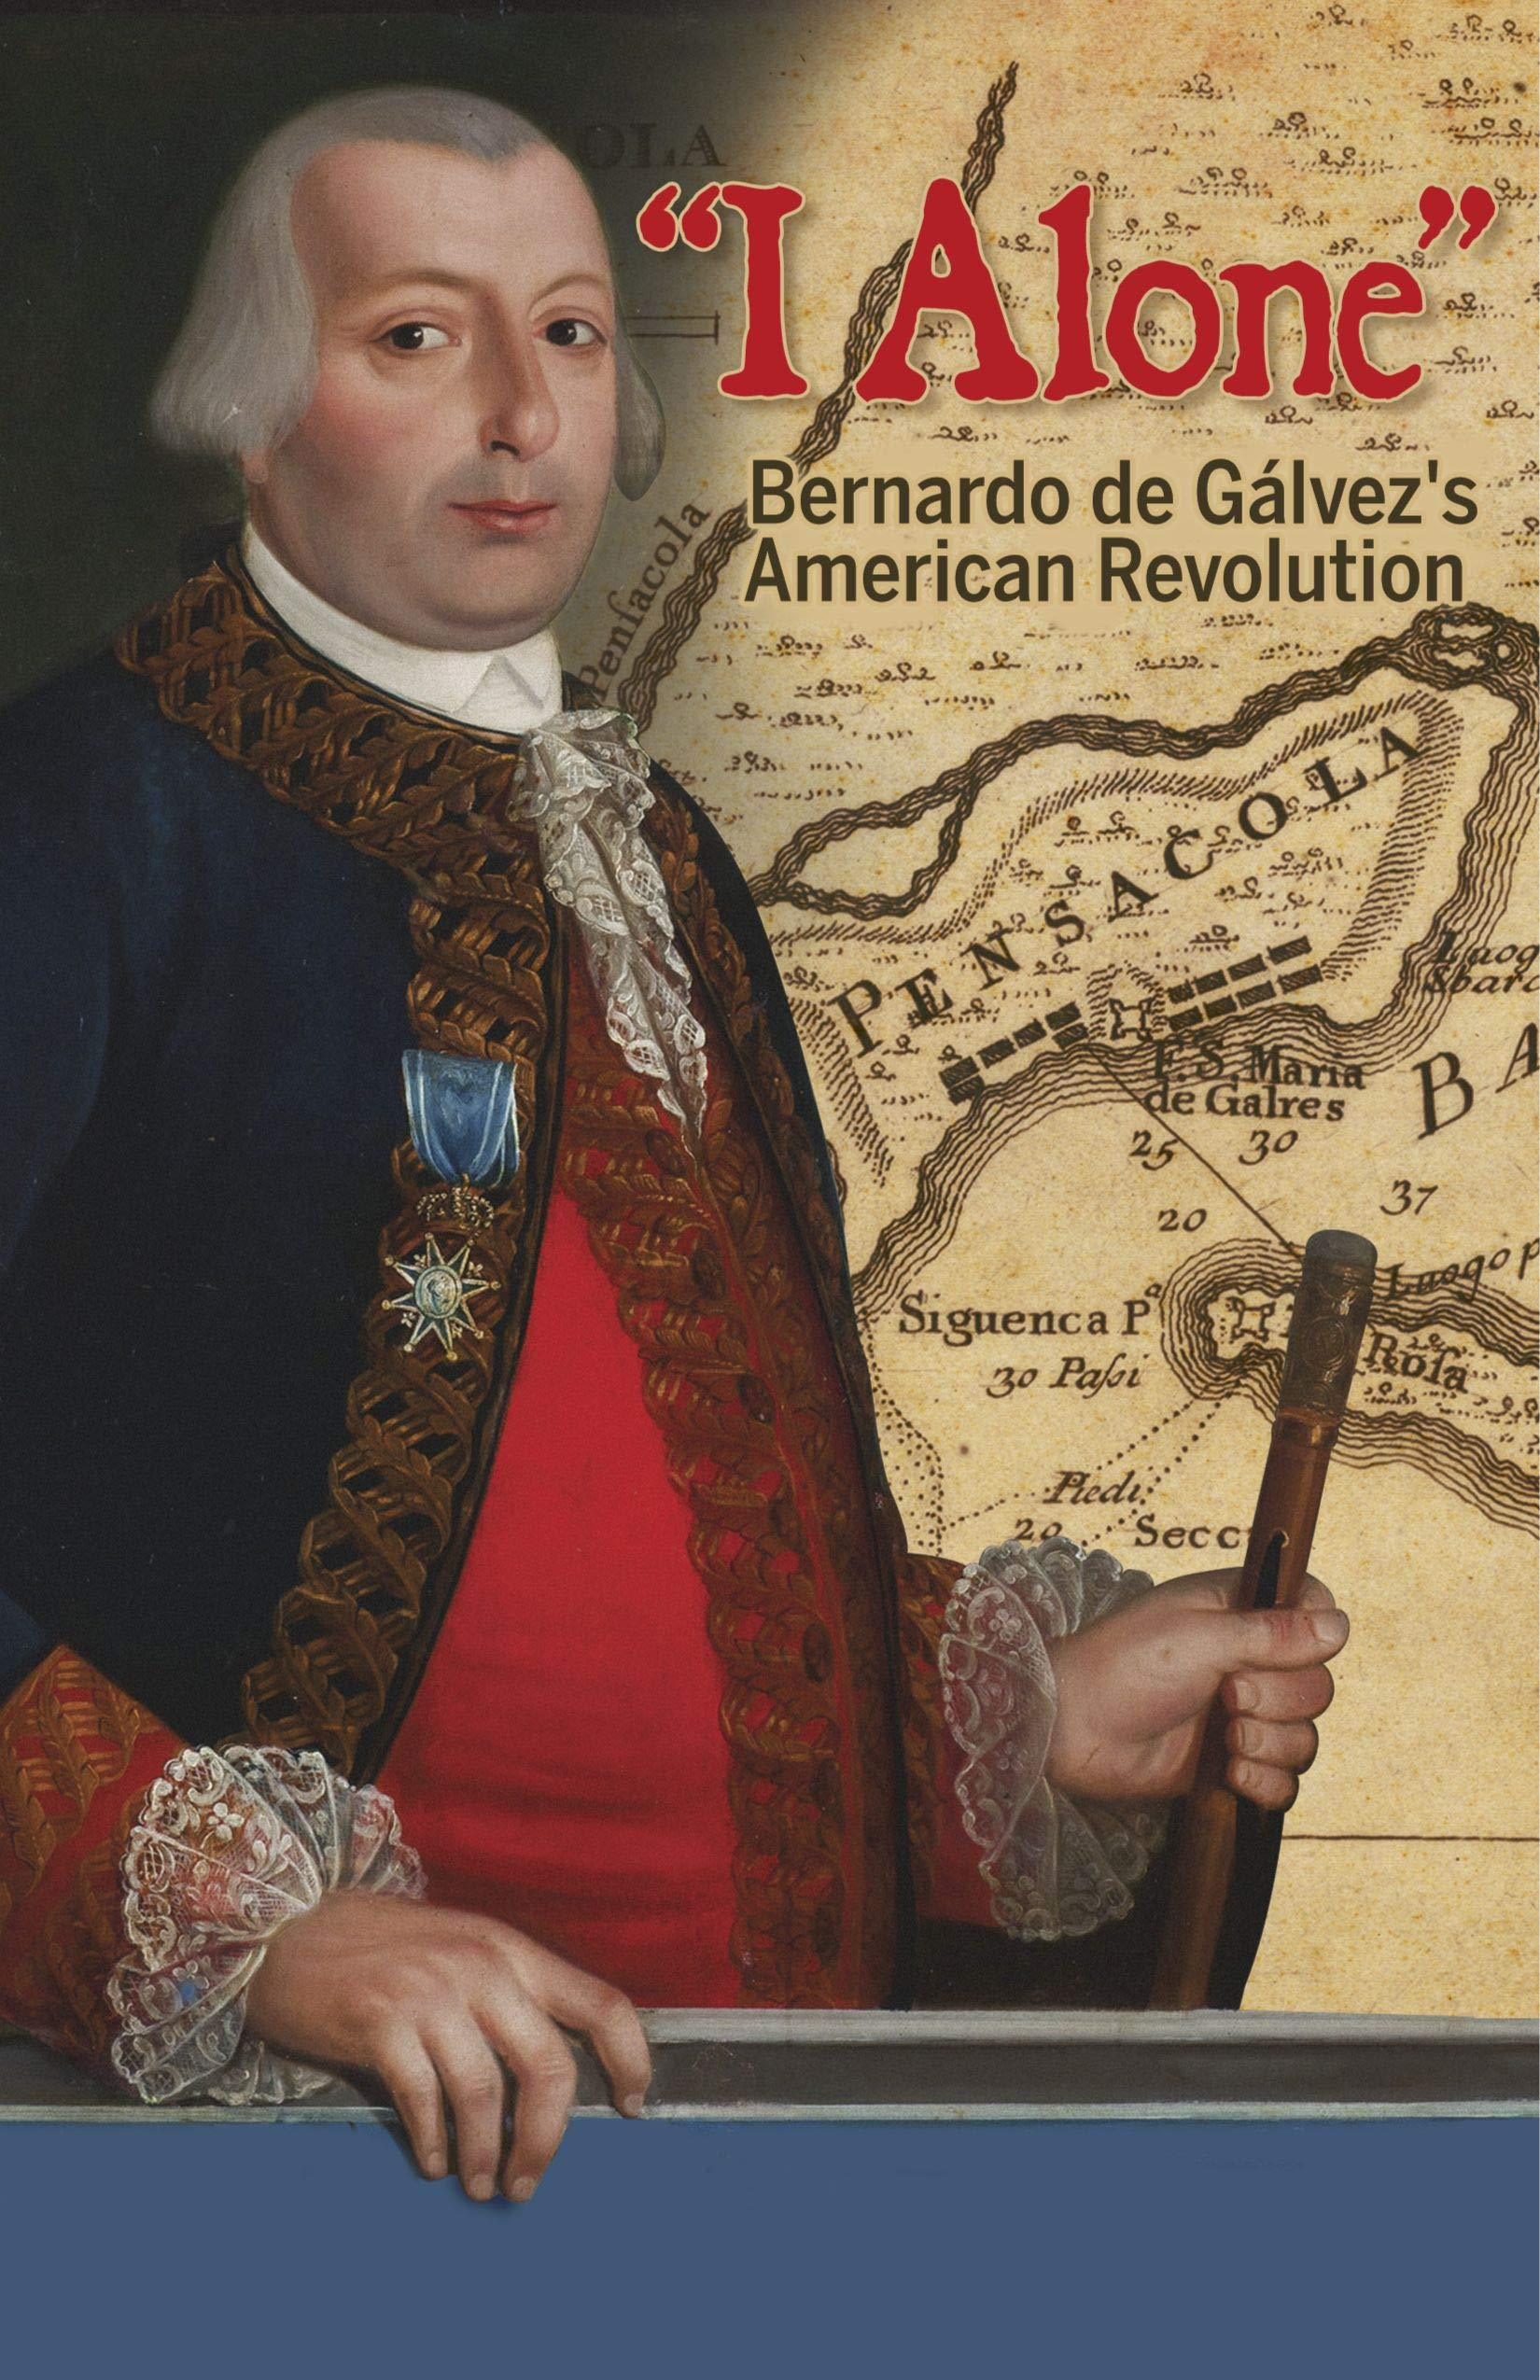 I Alone: Bernardo de Galvez's American Revolution: Amazon.co.uk: Garrigues,  Eduardo, Membrez, Nancy: 9781558858923: Books